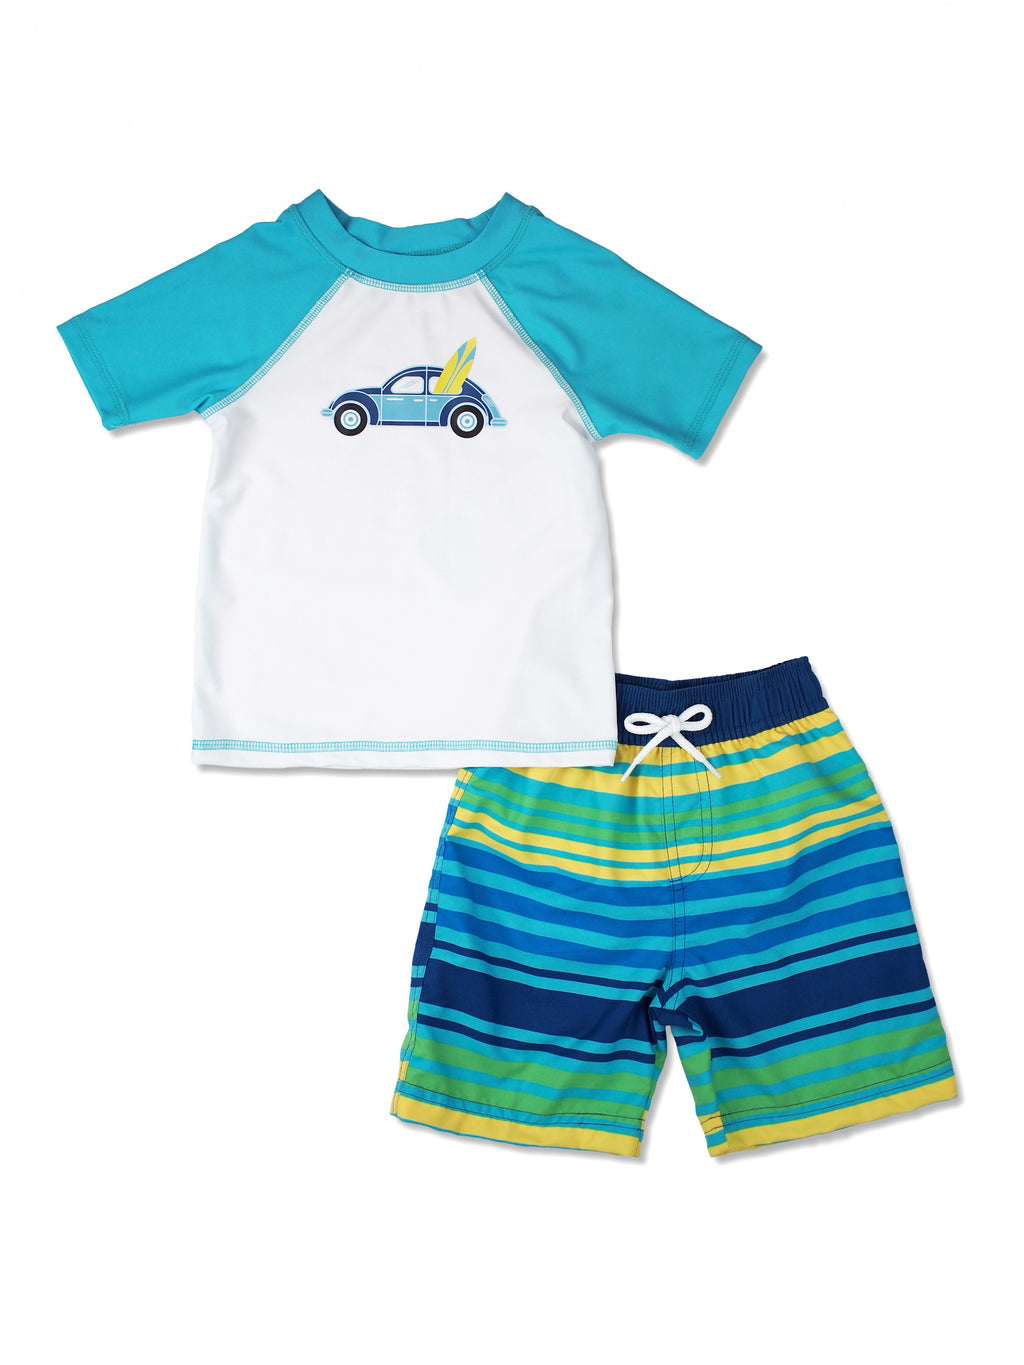 Boys Car Short Sleeve Rash Guard & Swim Trunks Set, Teal